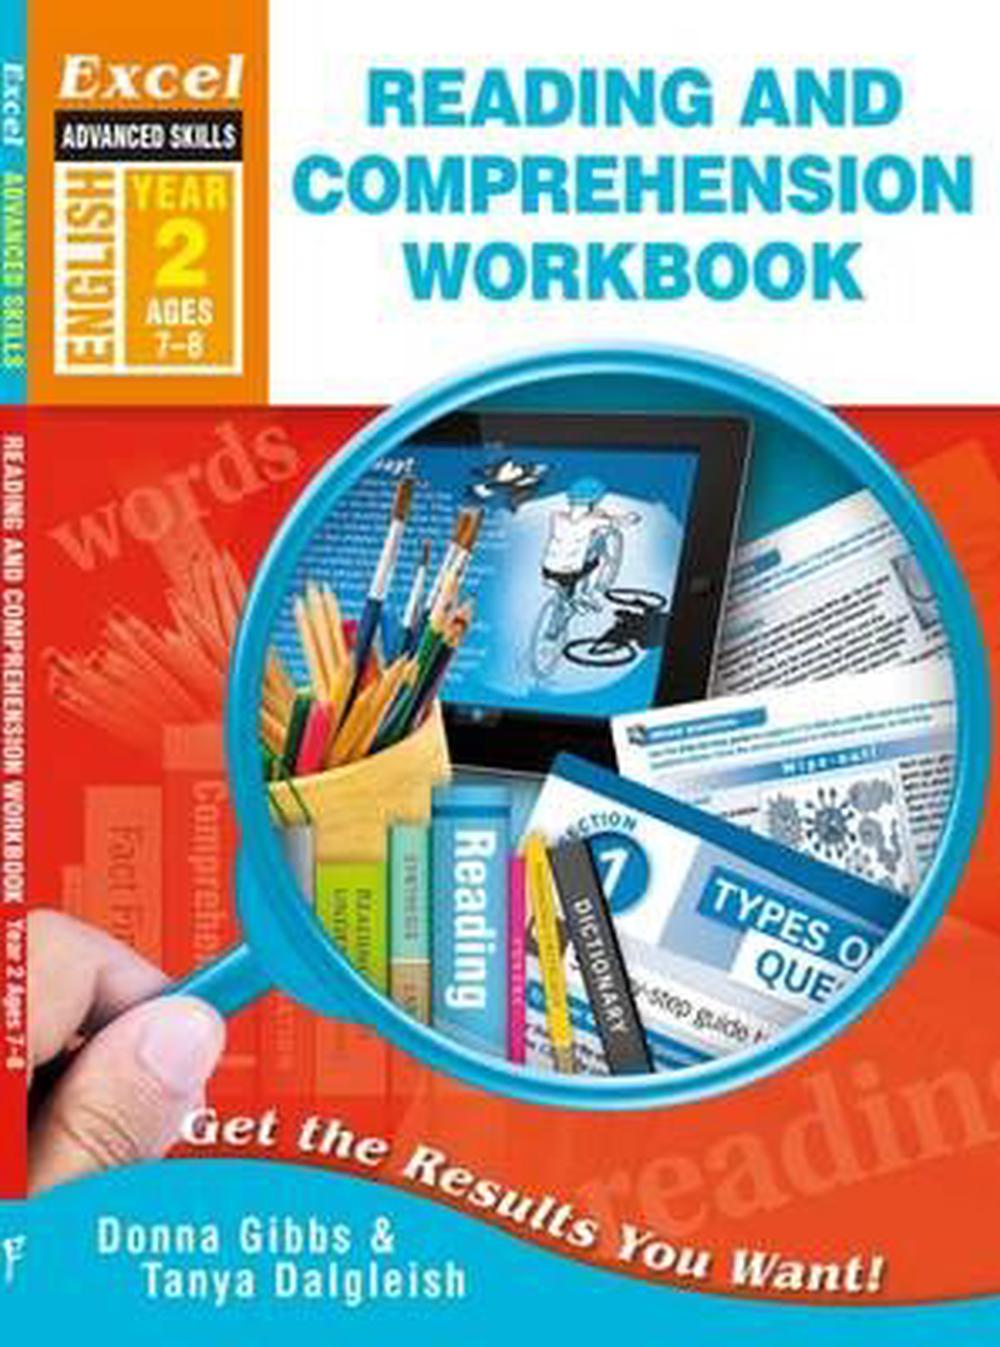 Excel Advanced Skills - Reading and Comprehension Workbook Year 2Excel Advanced Skills